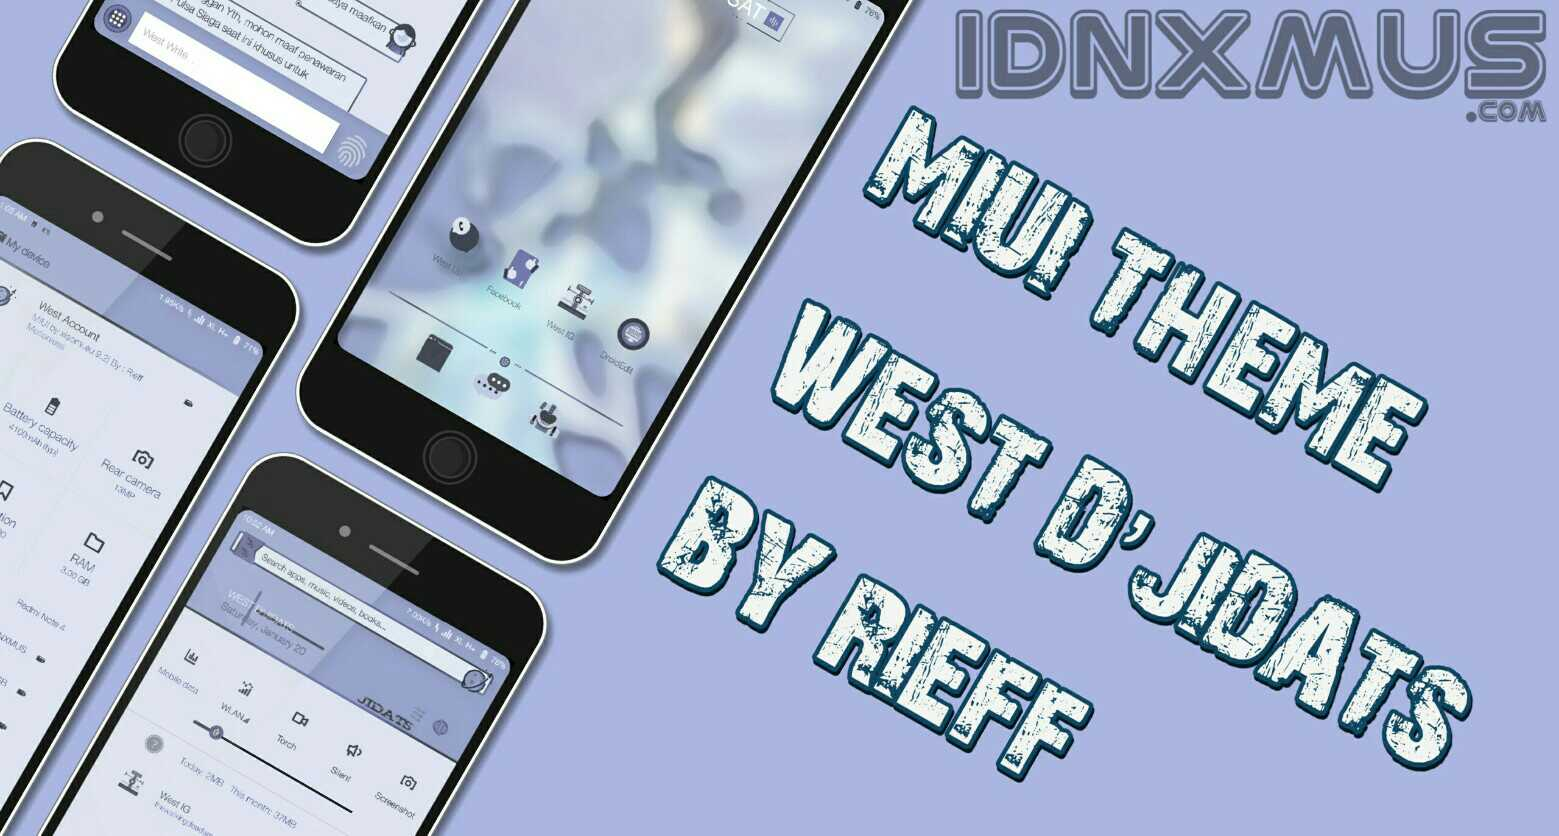 MIUI Theme West D'Jidats